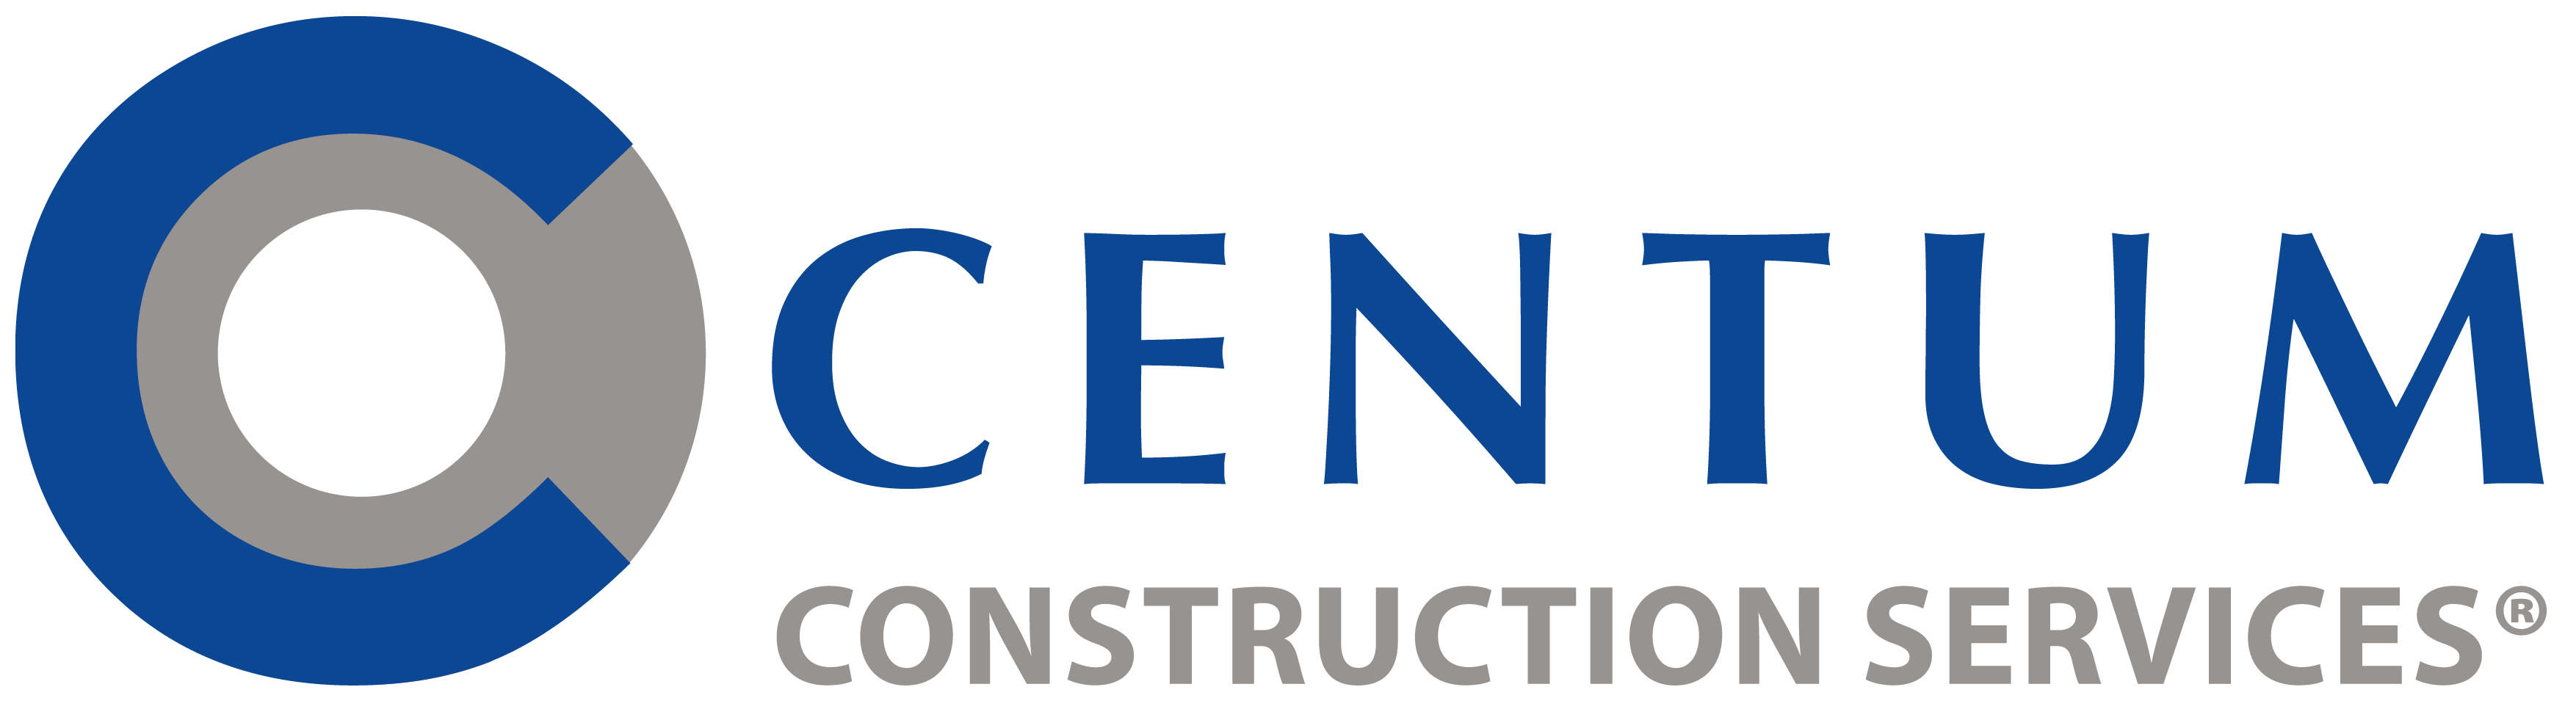 centum-construction-services